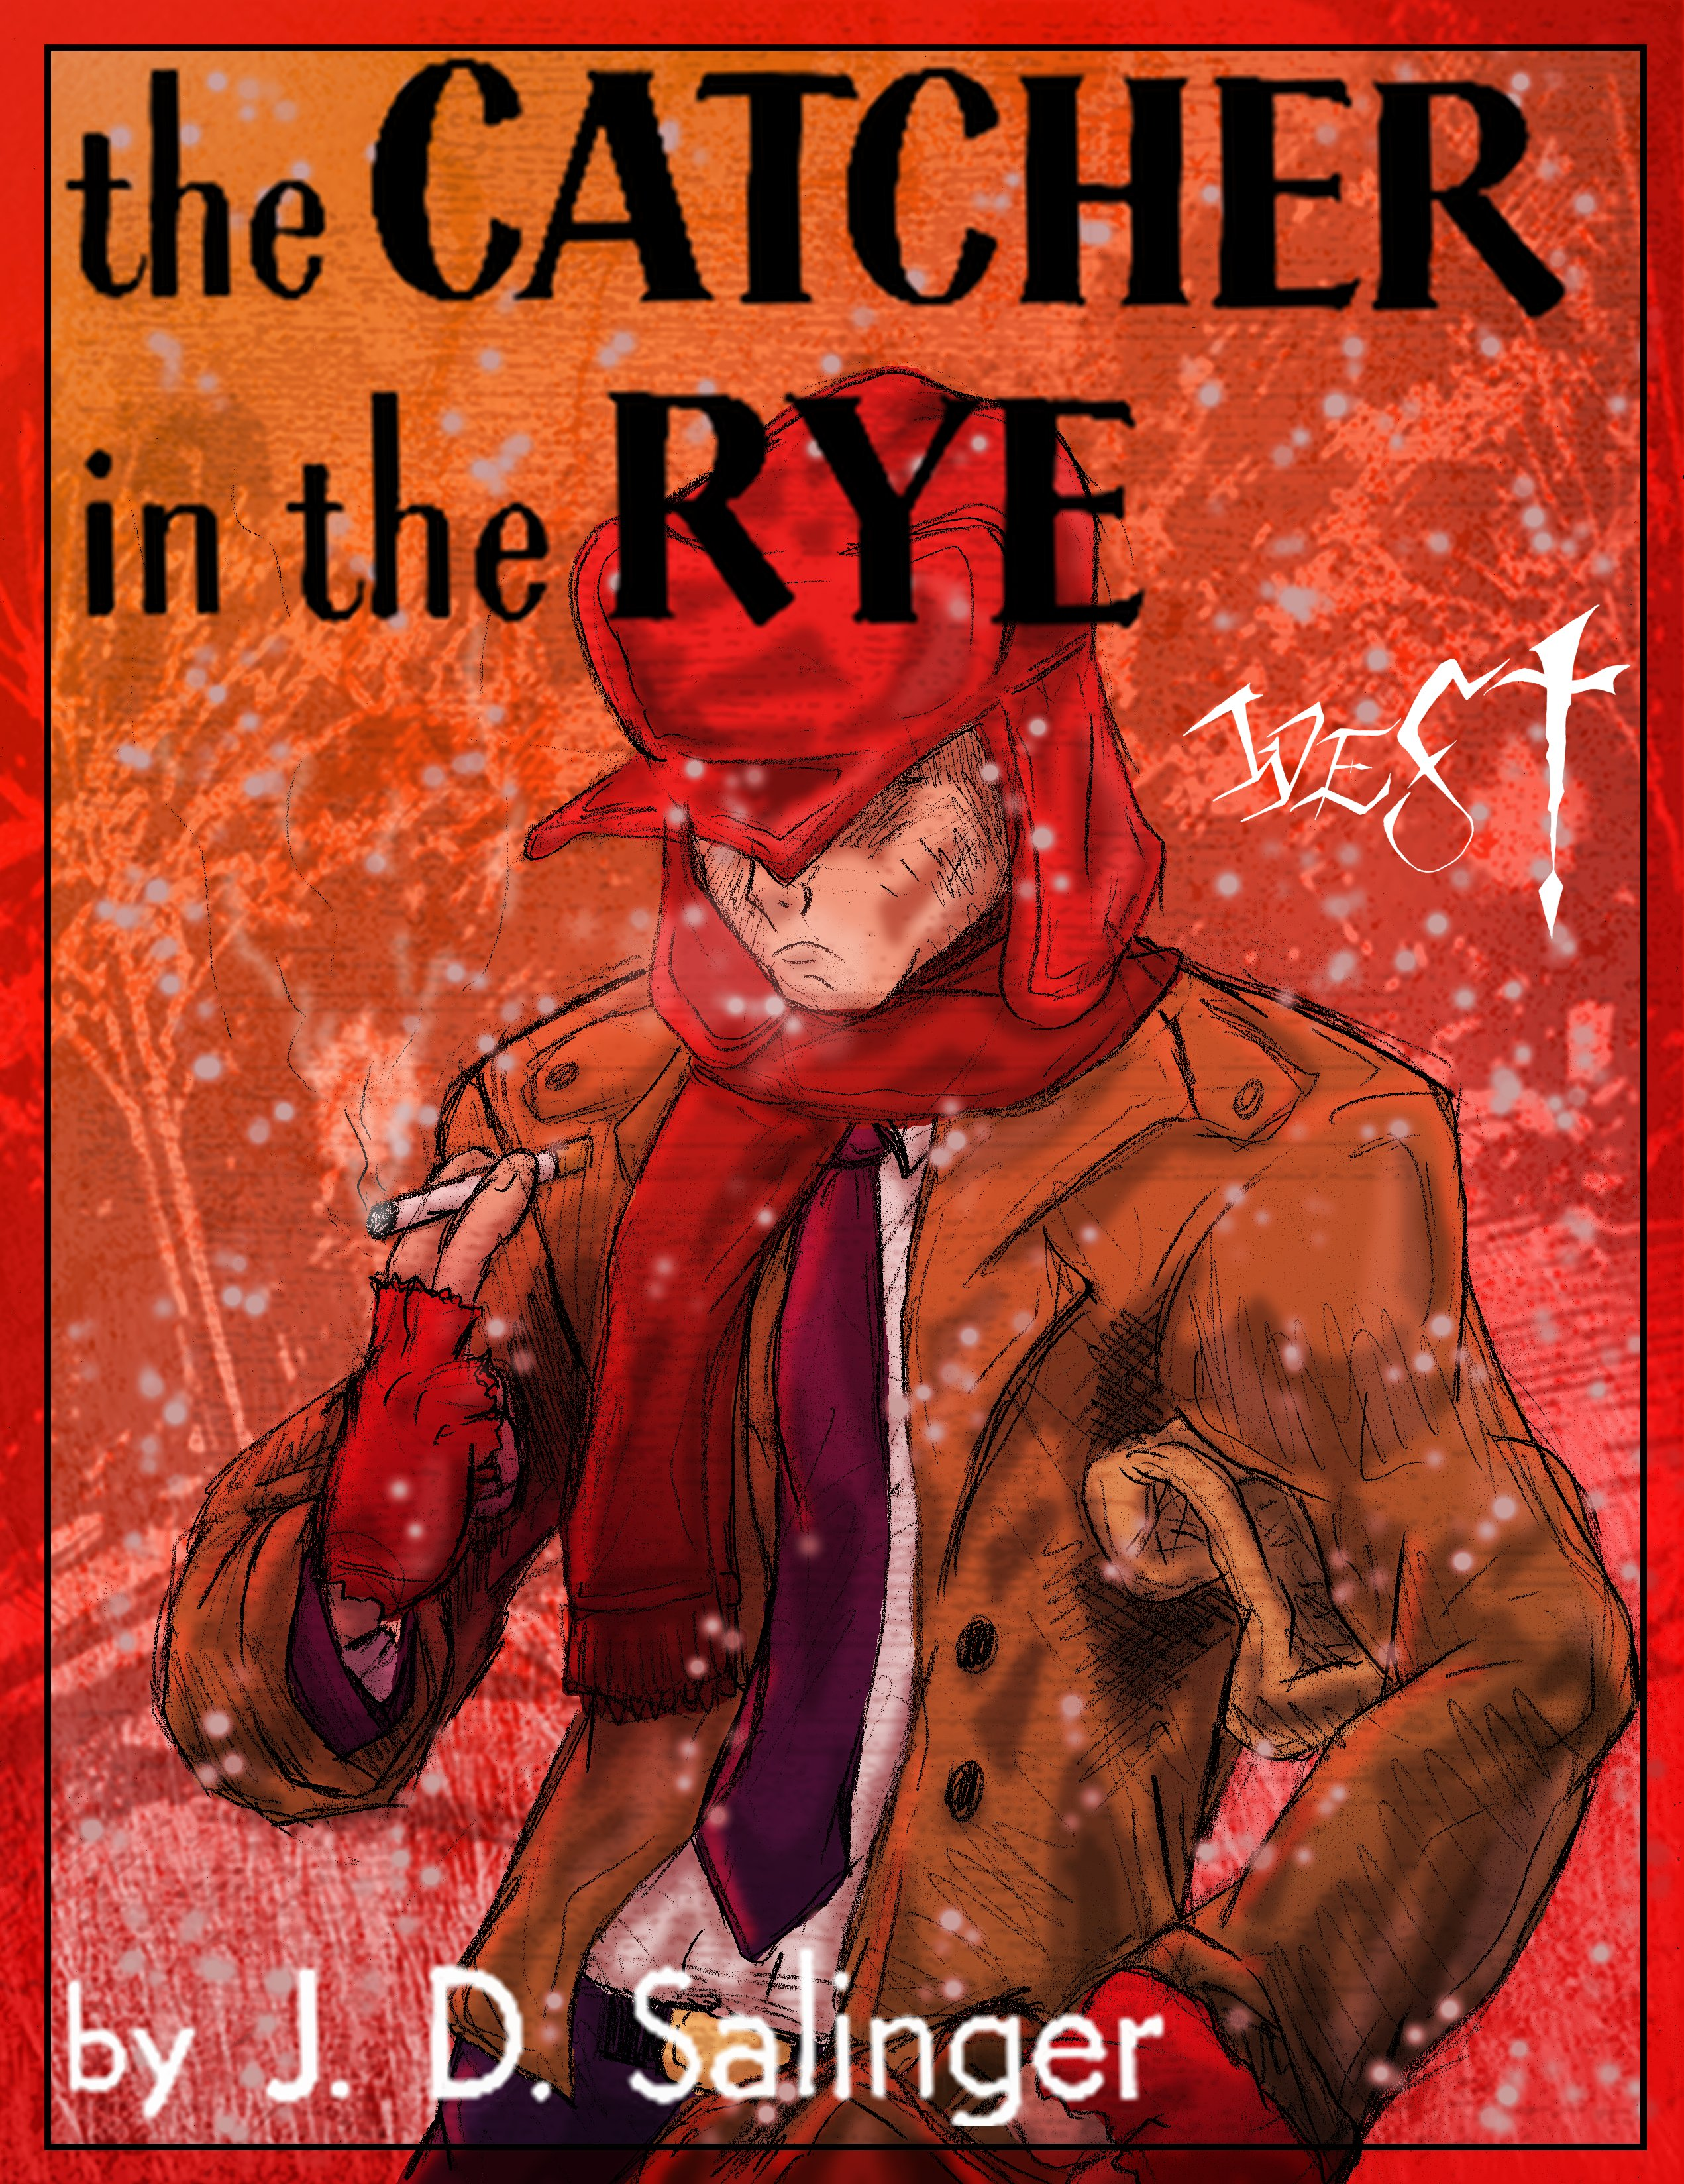 the importance of life in the catcher in the rye by j d salinger In his essay, you must change your life: formative responses to the catcher in the rye, mark silverberg explores the way american youth took to jd salinger's young hero teenagers who were moved by the catcher in the rye not only felt they could relate to holden, but felt that they could identify with him in other.